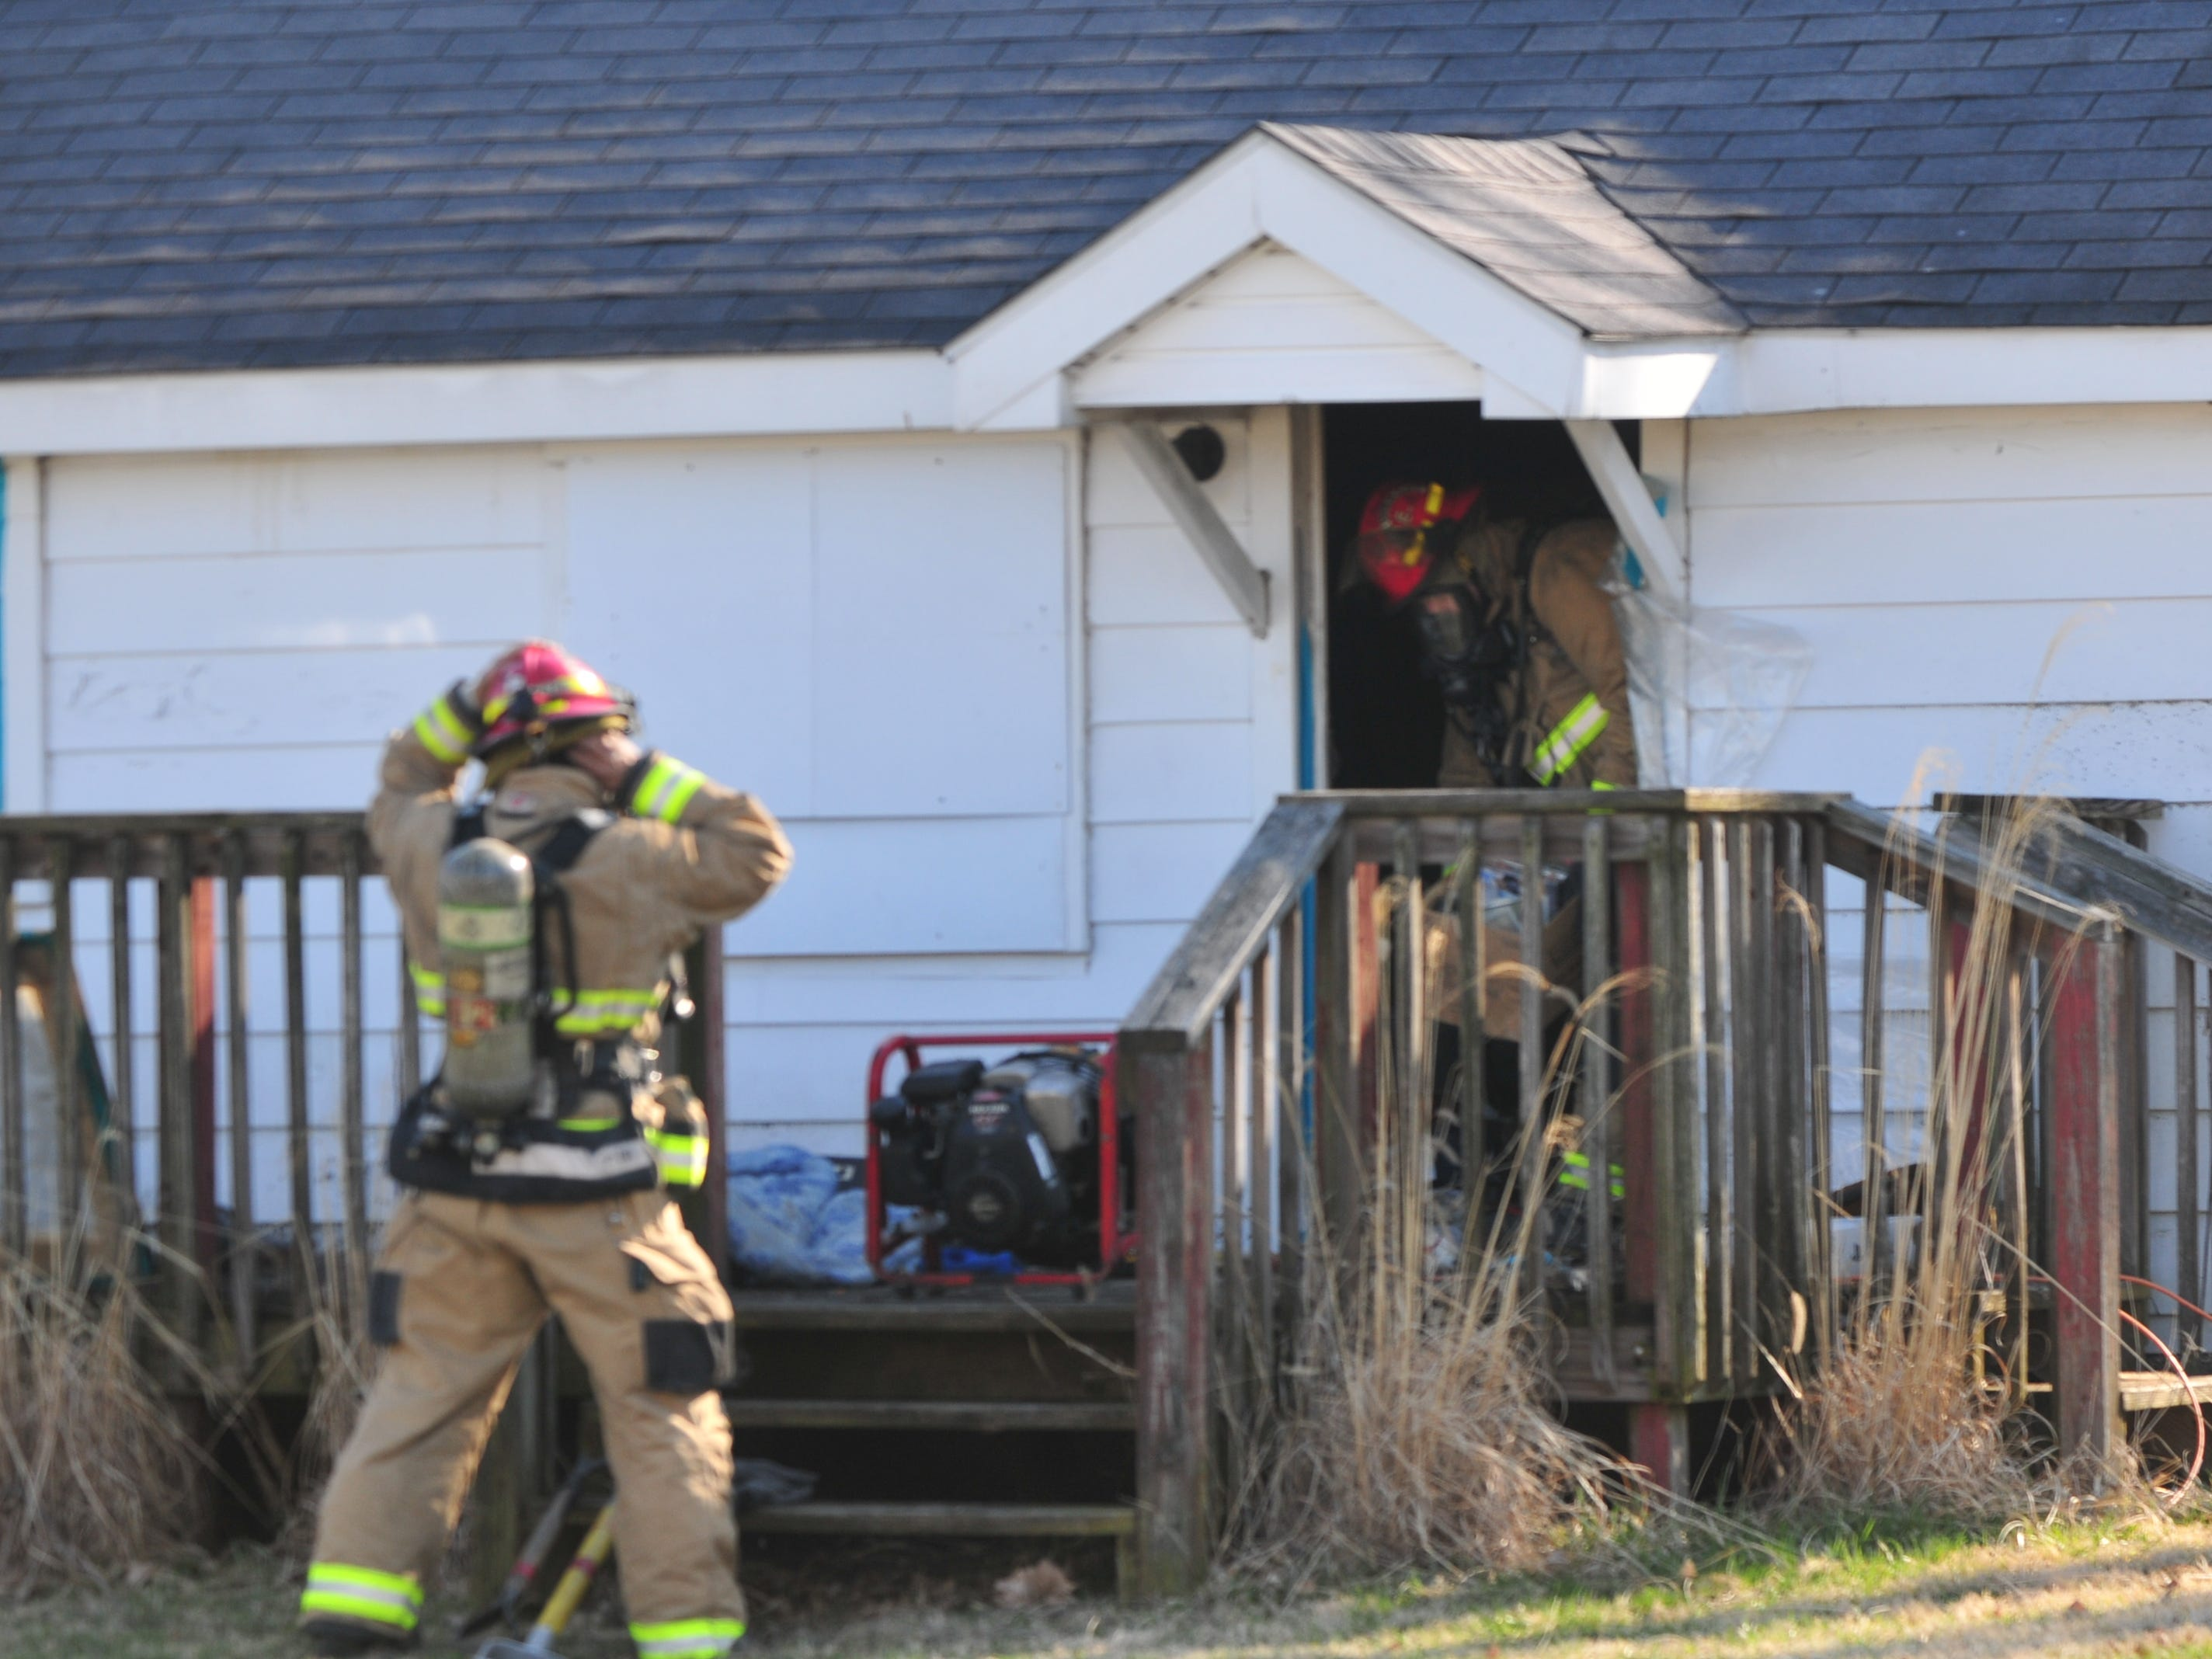 Richmond Fire Department personnel works to clear items from a house in the 2100 block of South 11th Street.